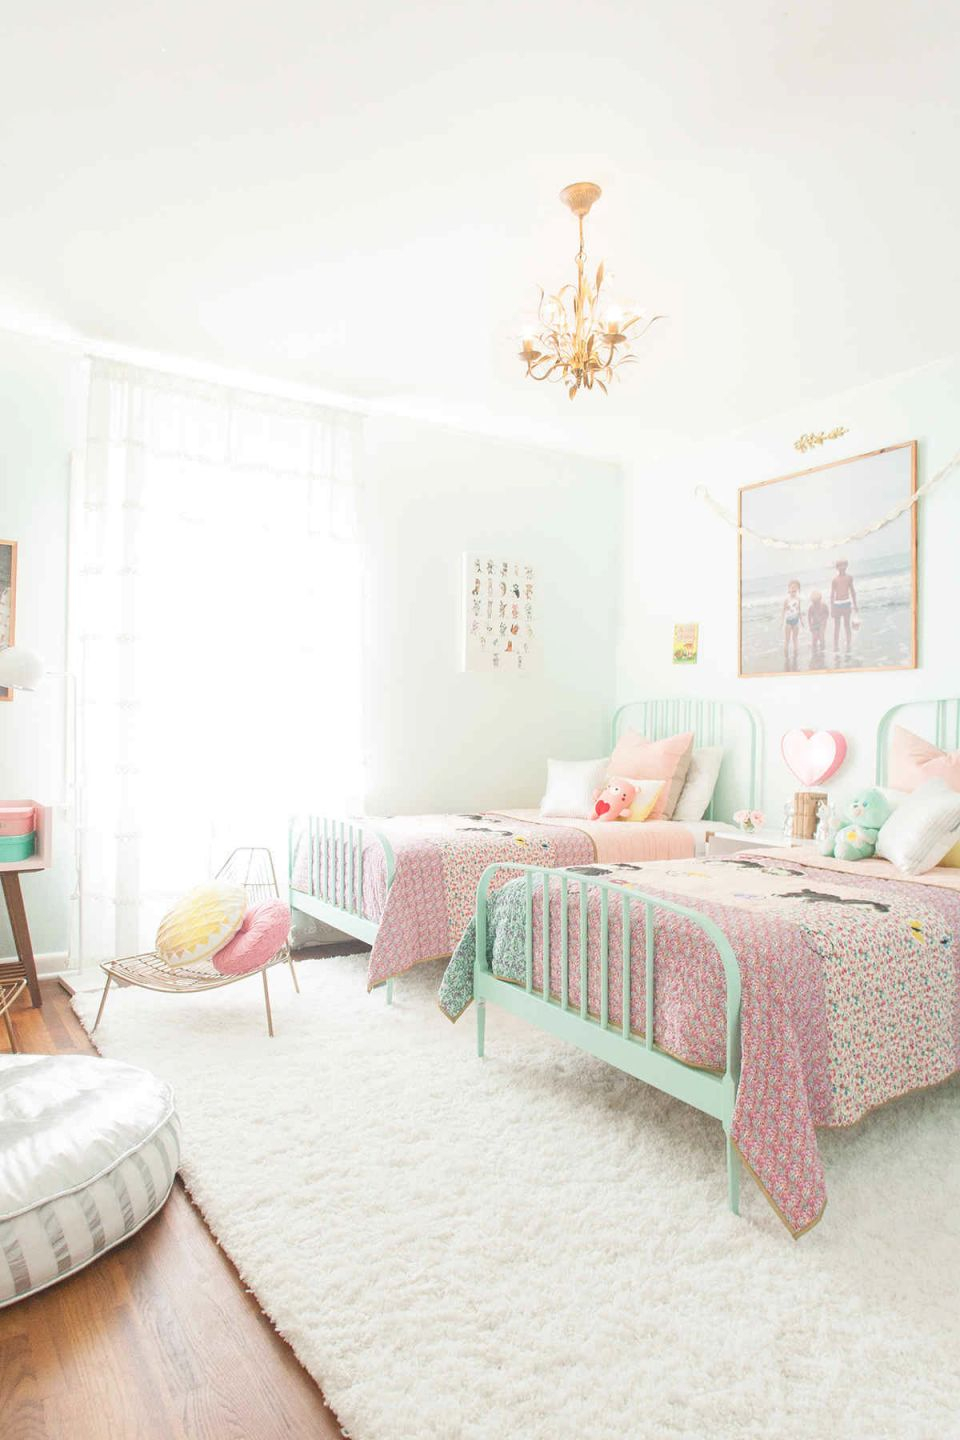 18 Shared Girl Bedroom Decorating Ideas | Make It And Love It throughout Bedroom Decorating Ideas For Girls